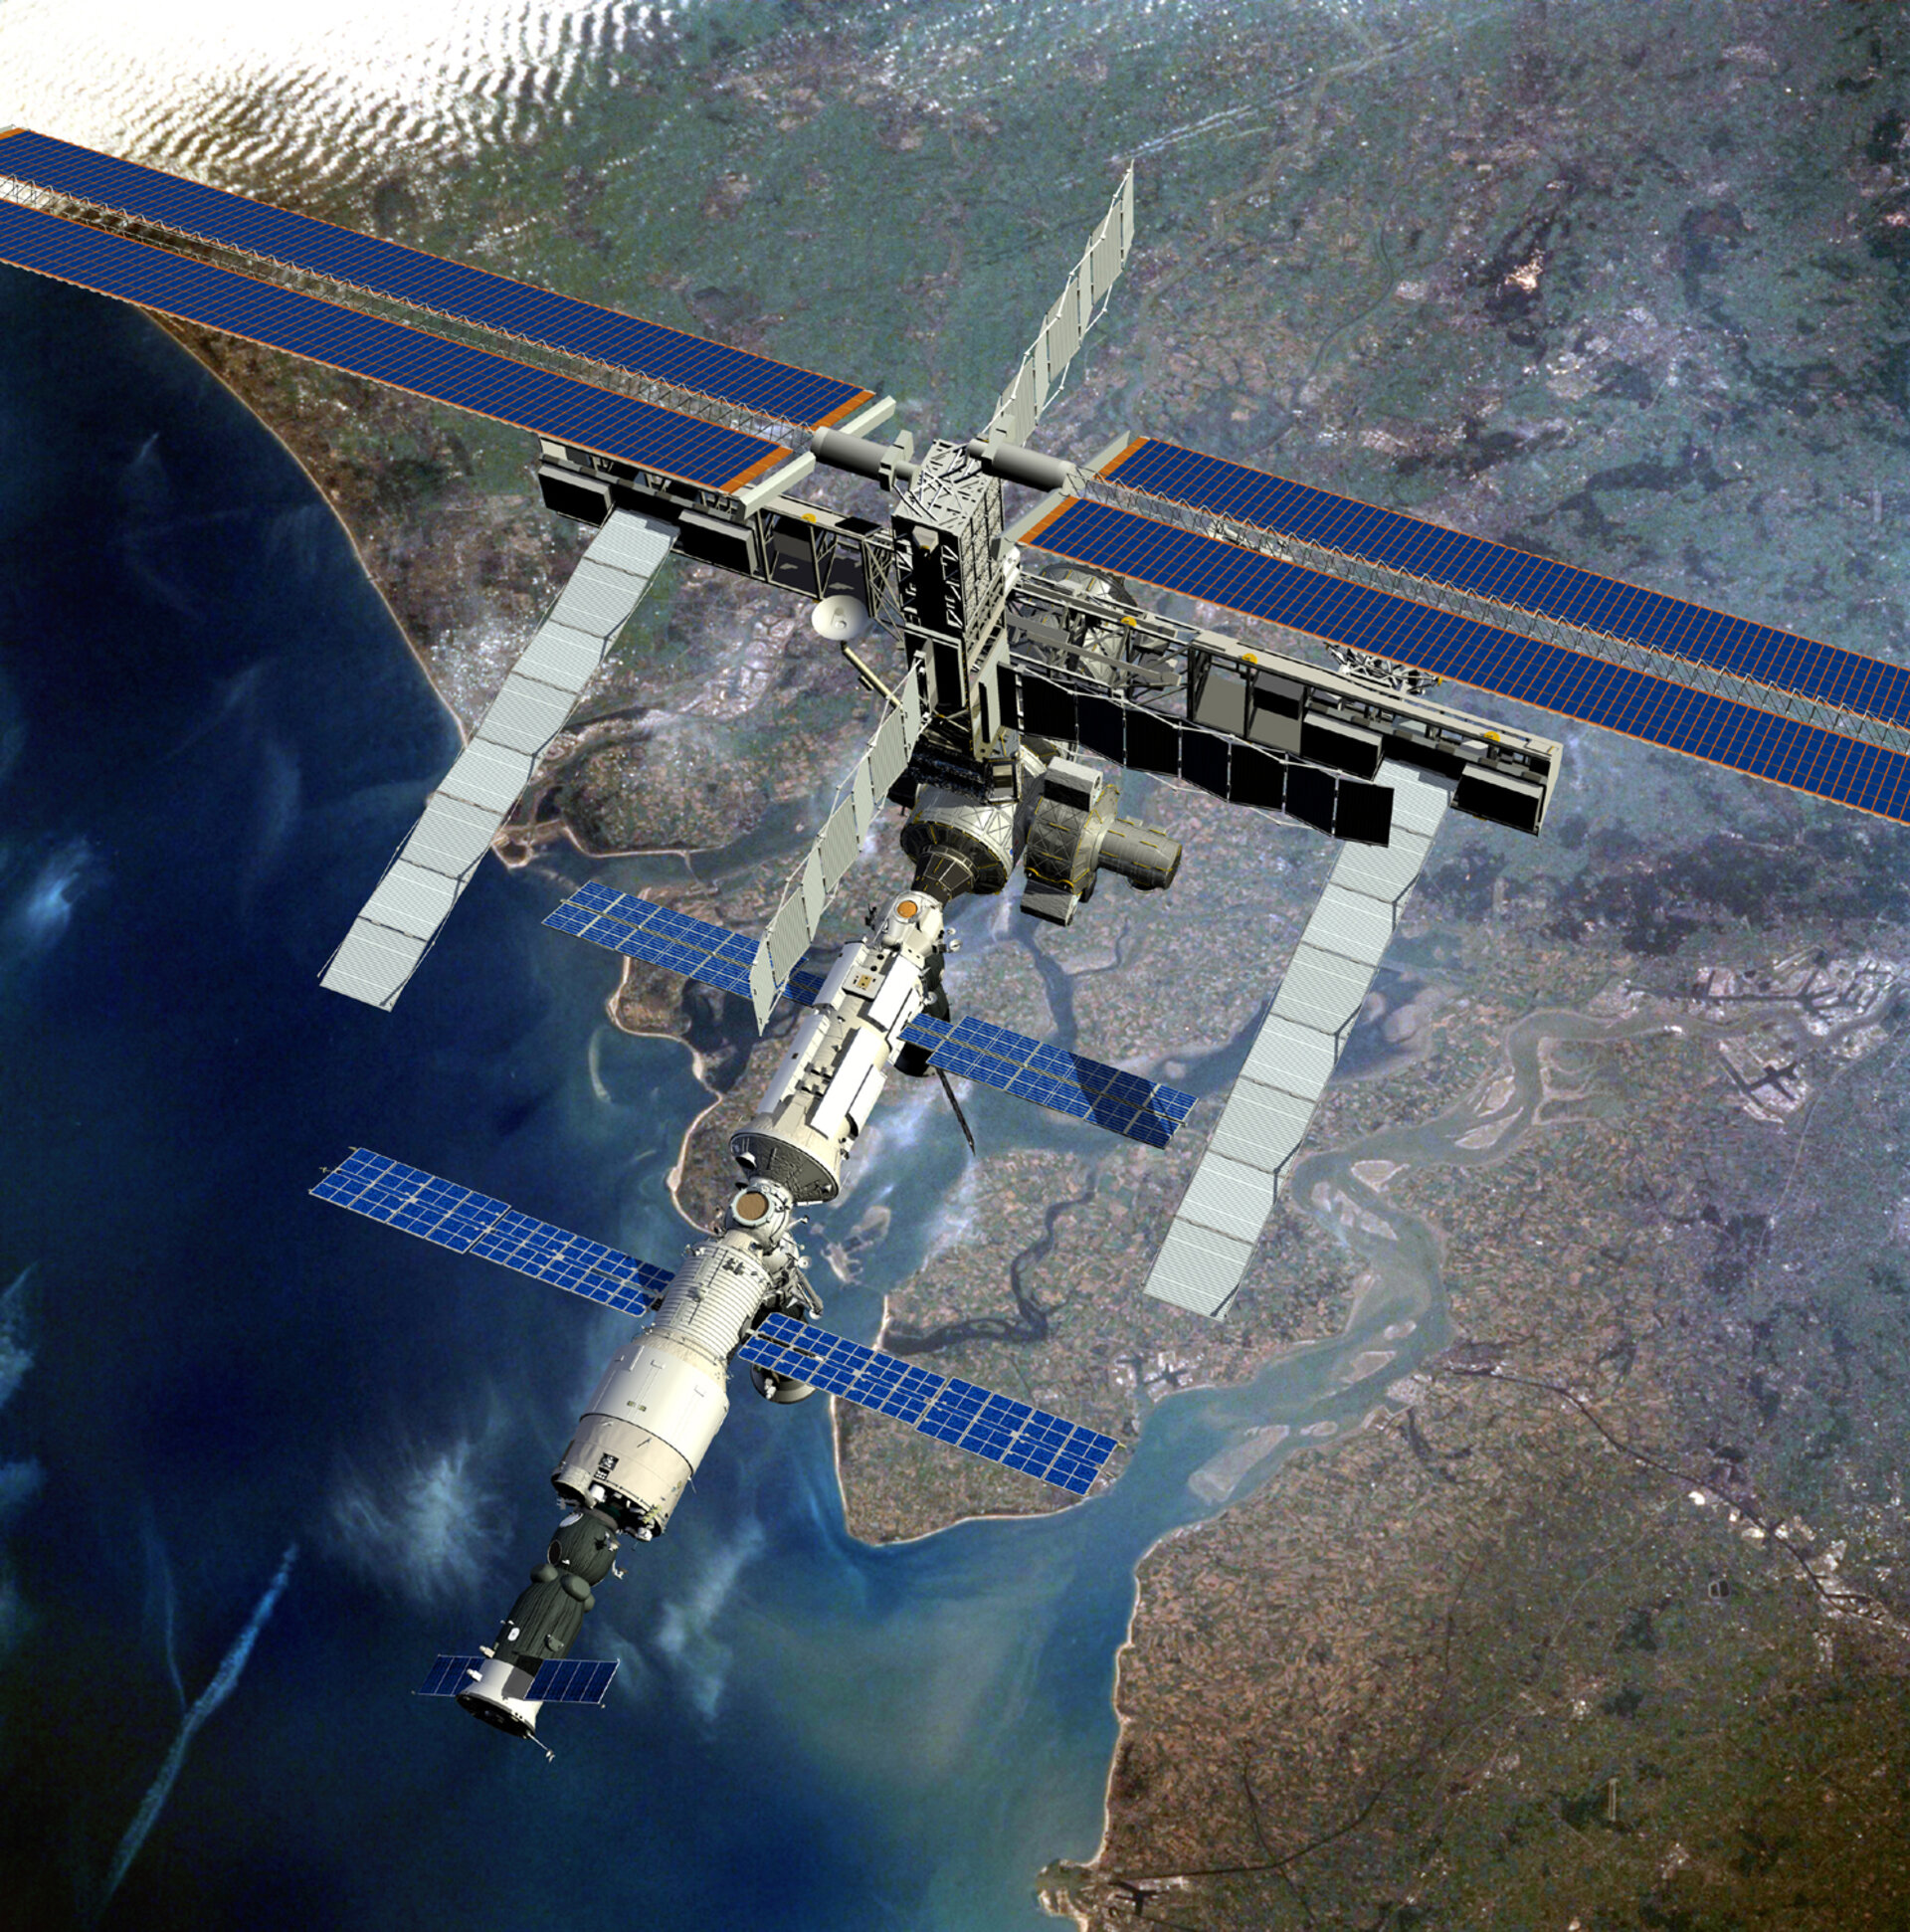 Artist's impression showing the current configuration of ISS as it passes over the Dutch coast